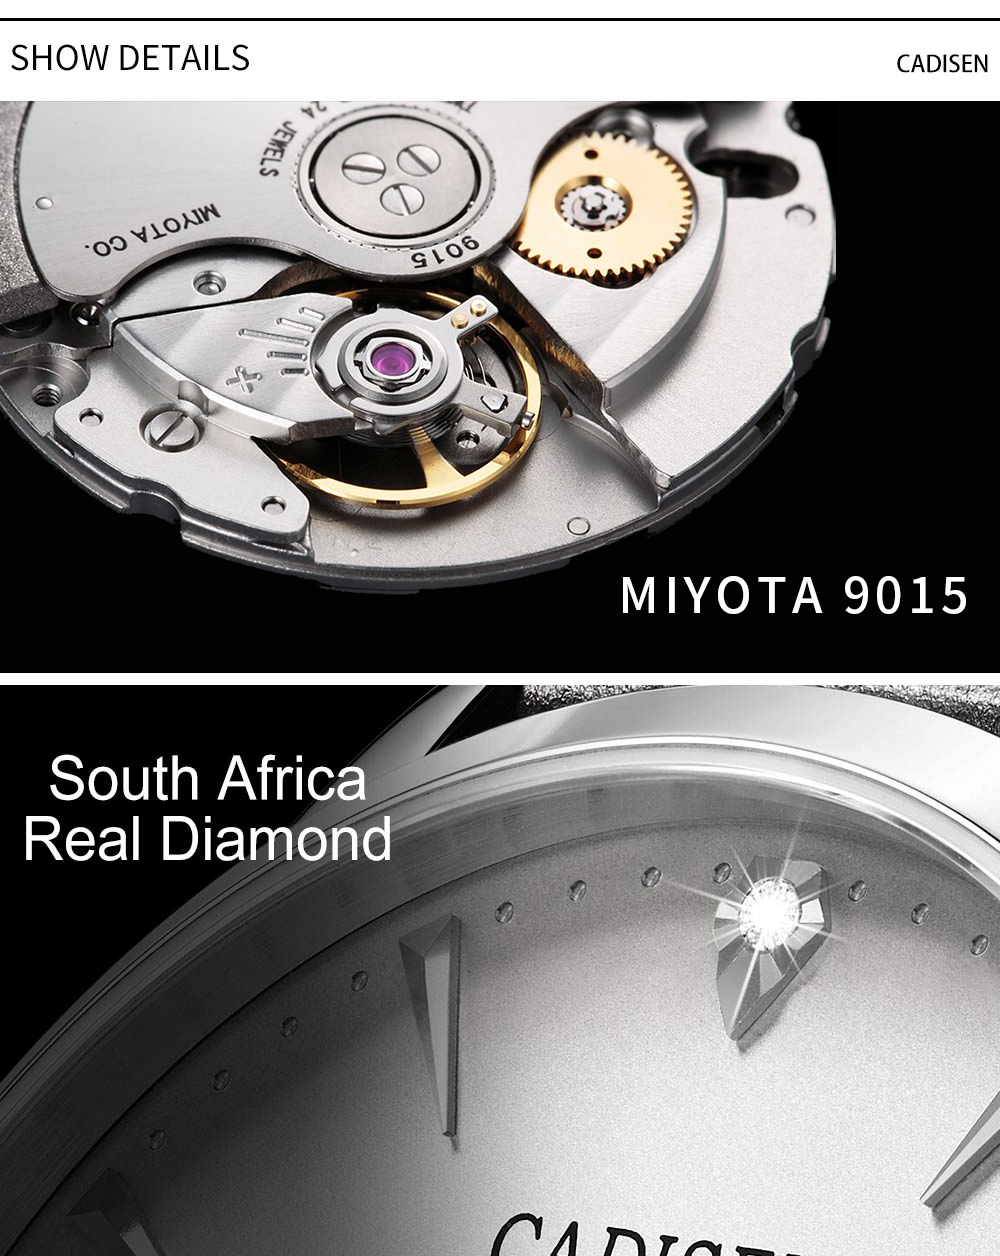 H24dc34103e11426f89b6a654c7f1c472L CADISEN Men Watches Automatic Mechanical Wrist Watch MIYOTA 9015 Top Brand Luxury Real Diamond Watch Curved Sapphire Glass Clock